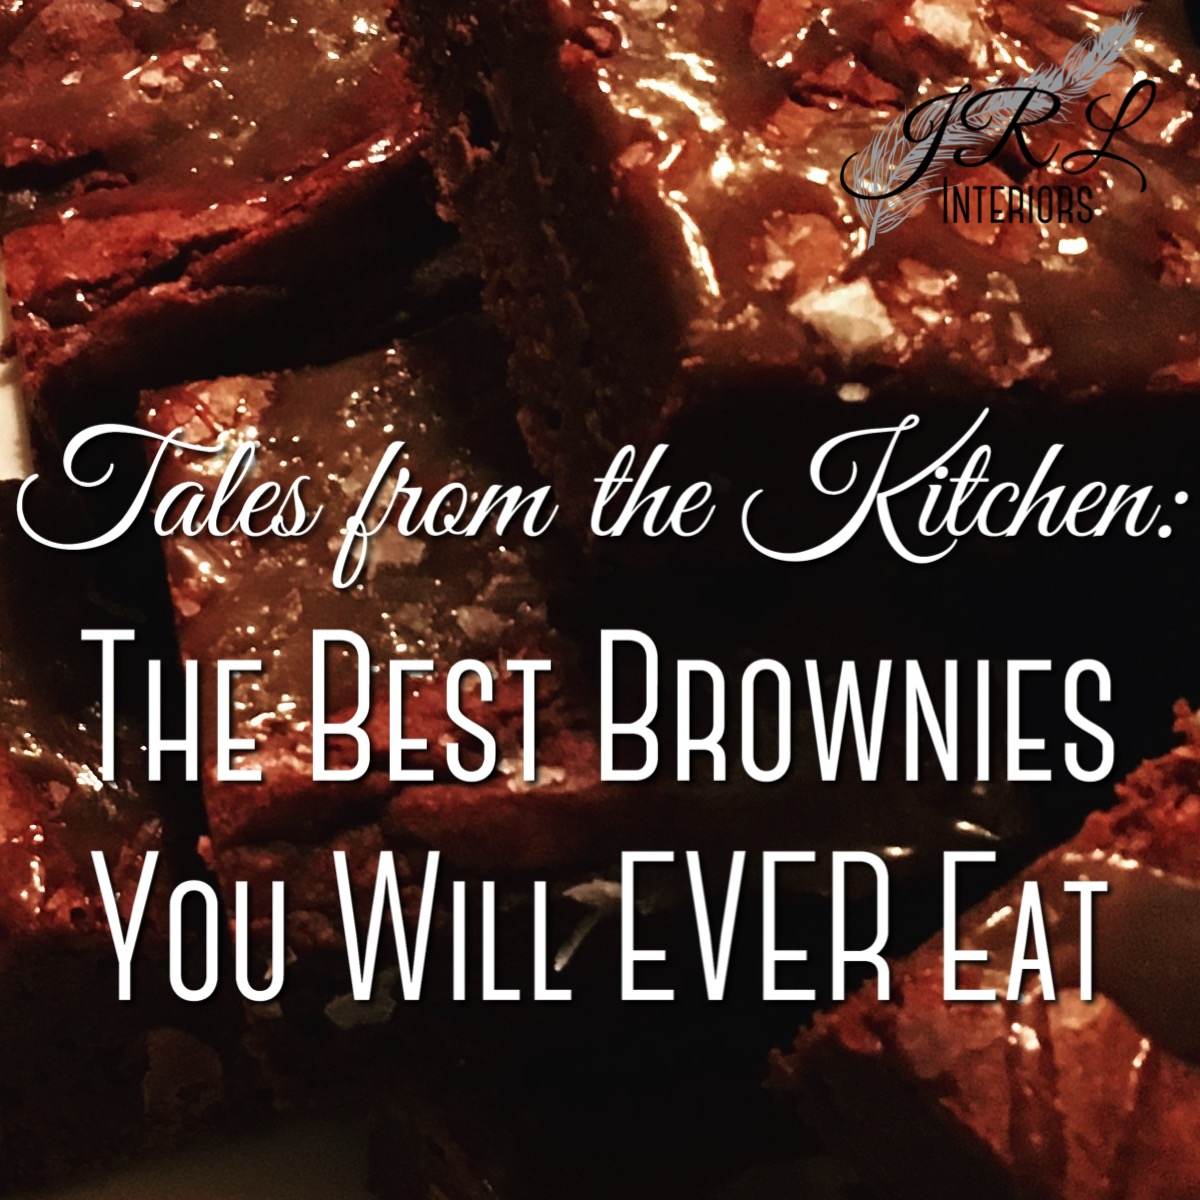 The Best Brownie Recipe.jpg